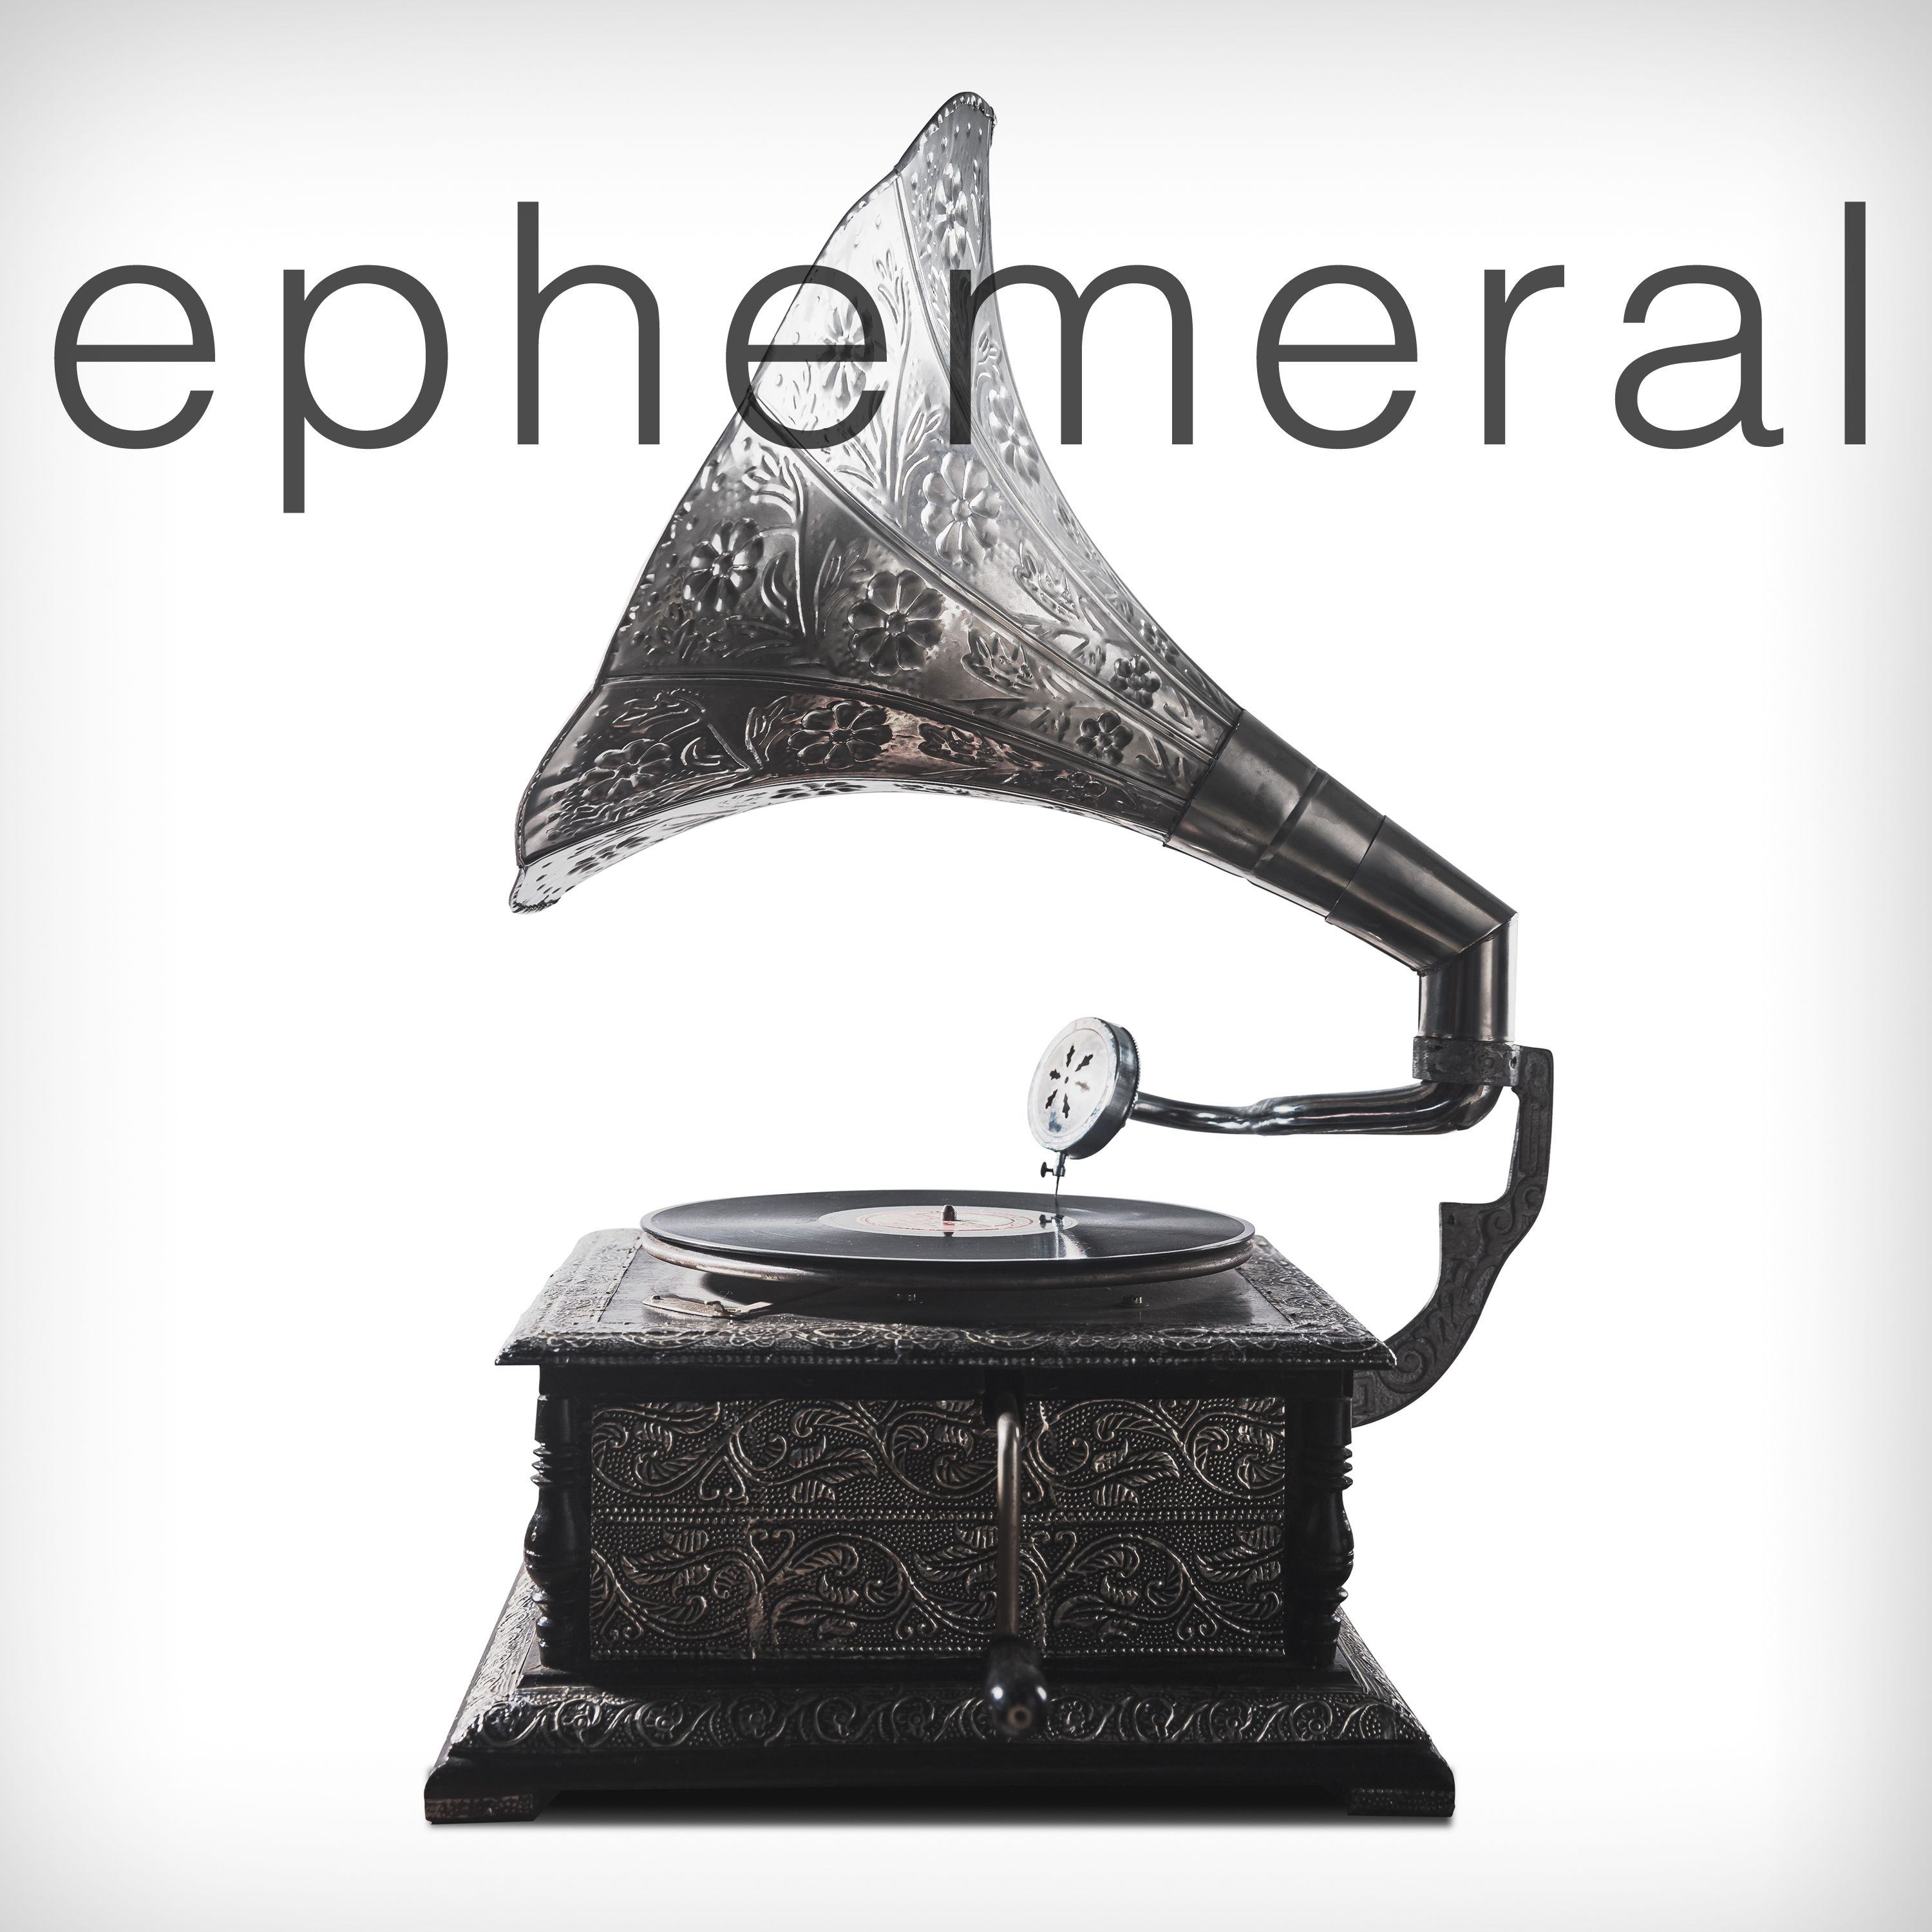 Introducing: Ephemeral Season 2